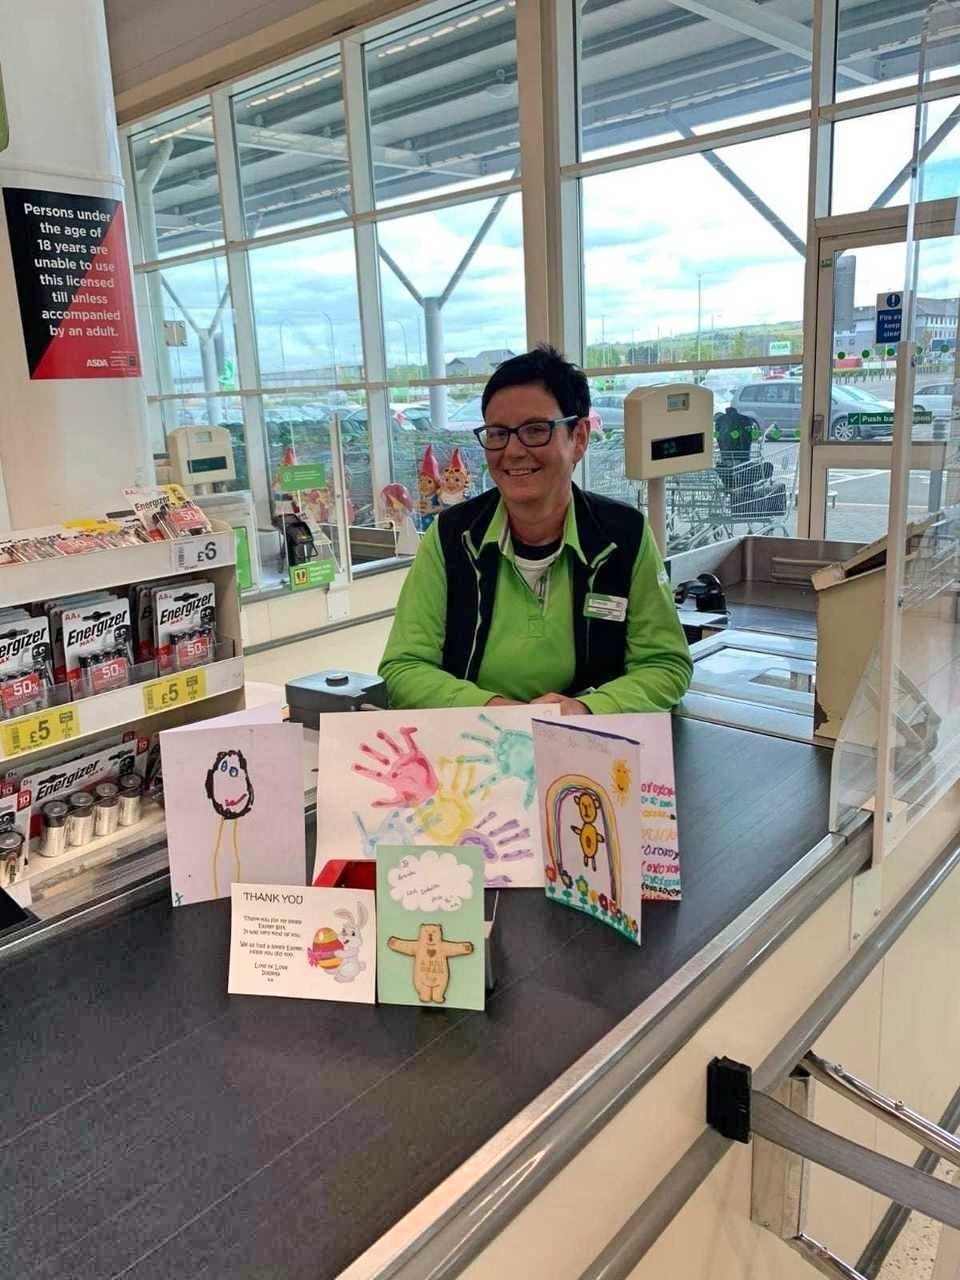 Popular checkouts colleague Brenda from Asda Antrim receives 'fan mail' from customers' kids | Asda Antrim